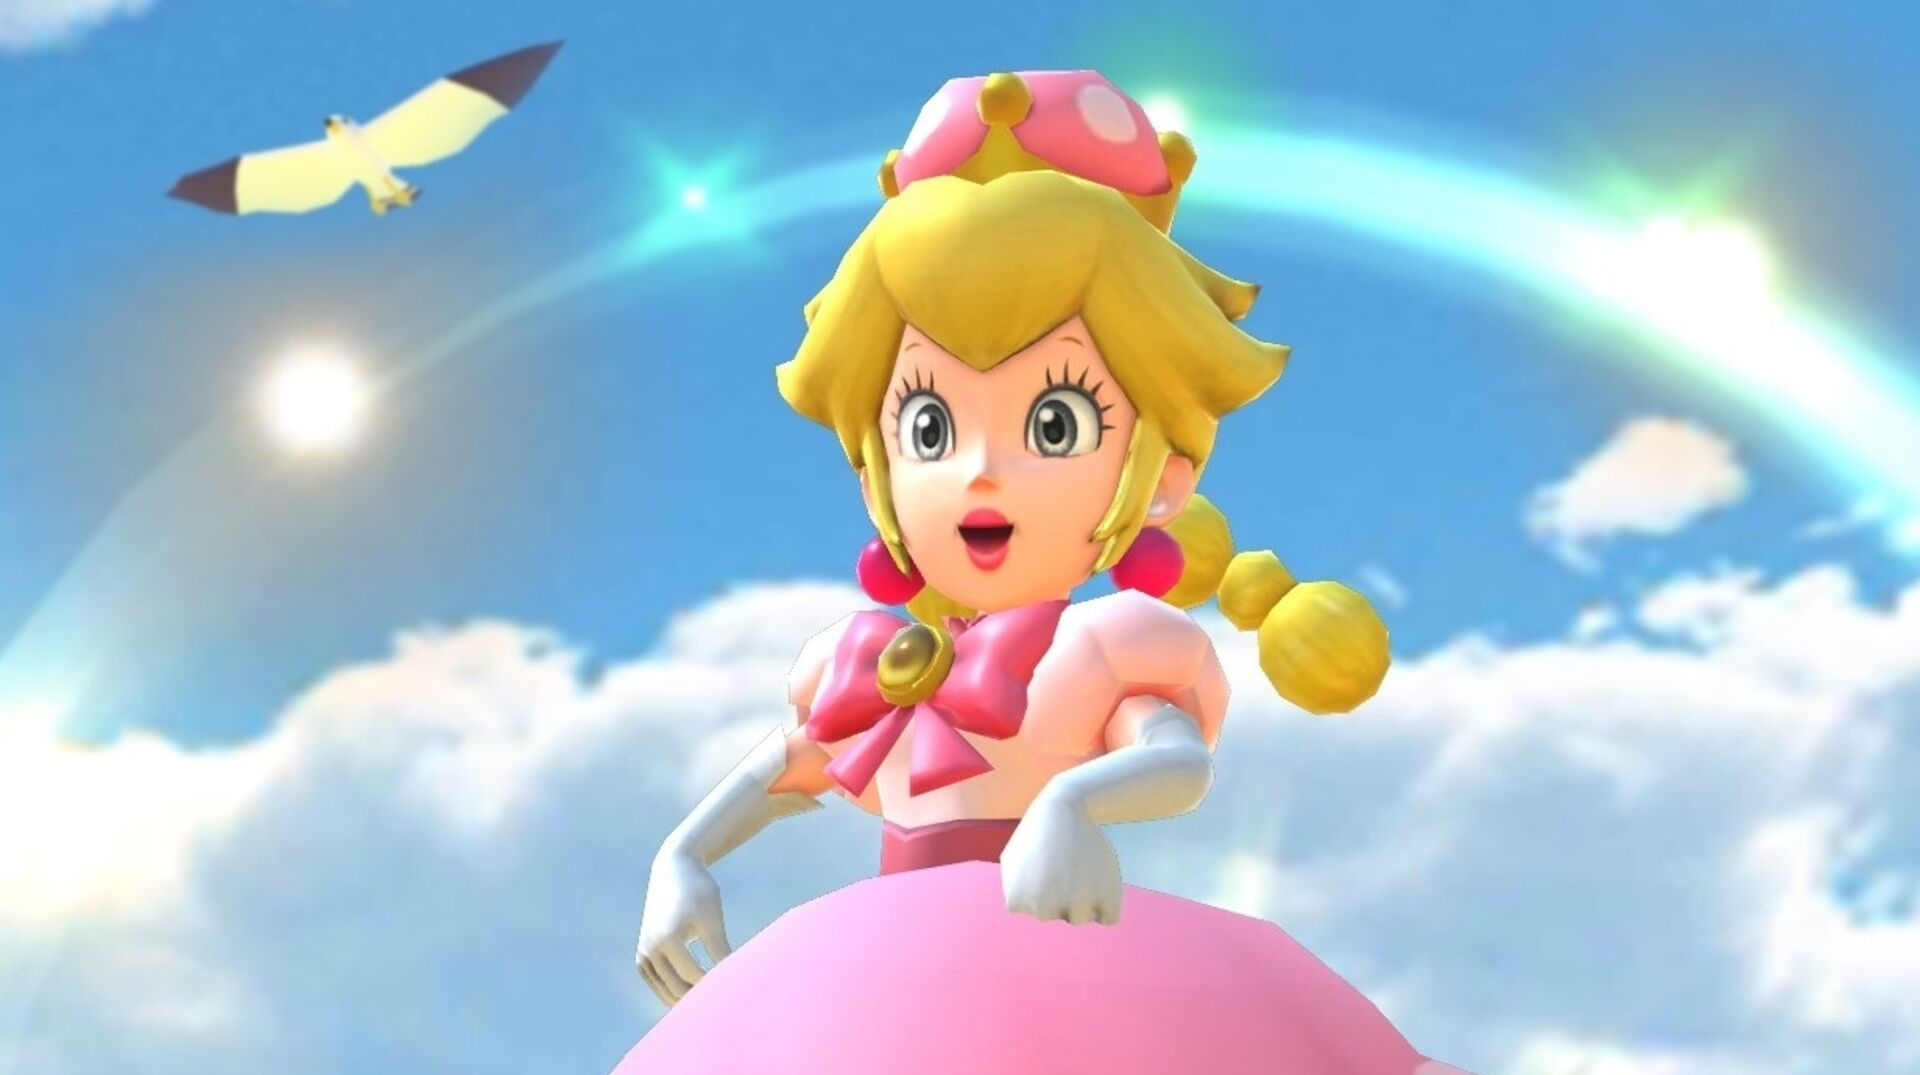 The character that inspired Bowsette is coming to Mario Kart